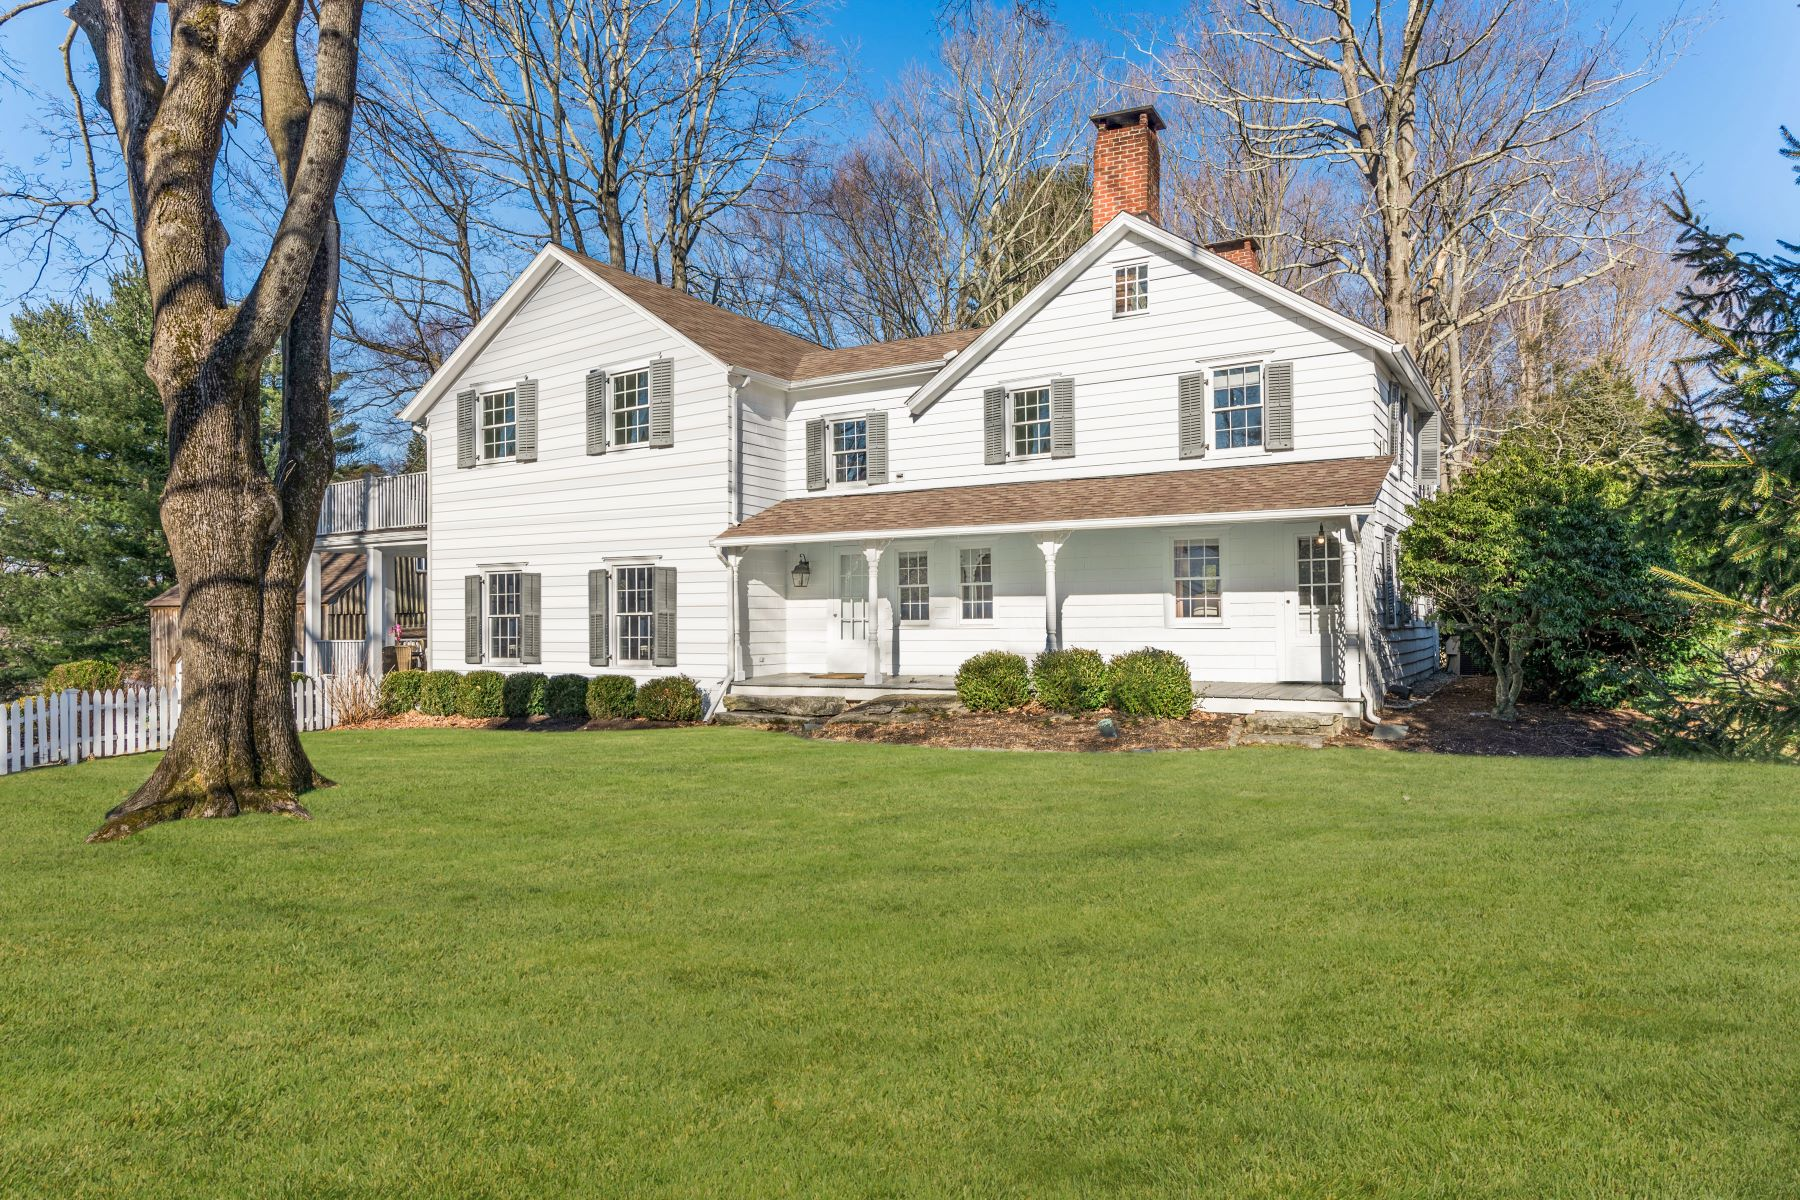 Single Family Homes for Active at 789 Ridgefield Road Wilton, Connecticut 06897 United States